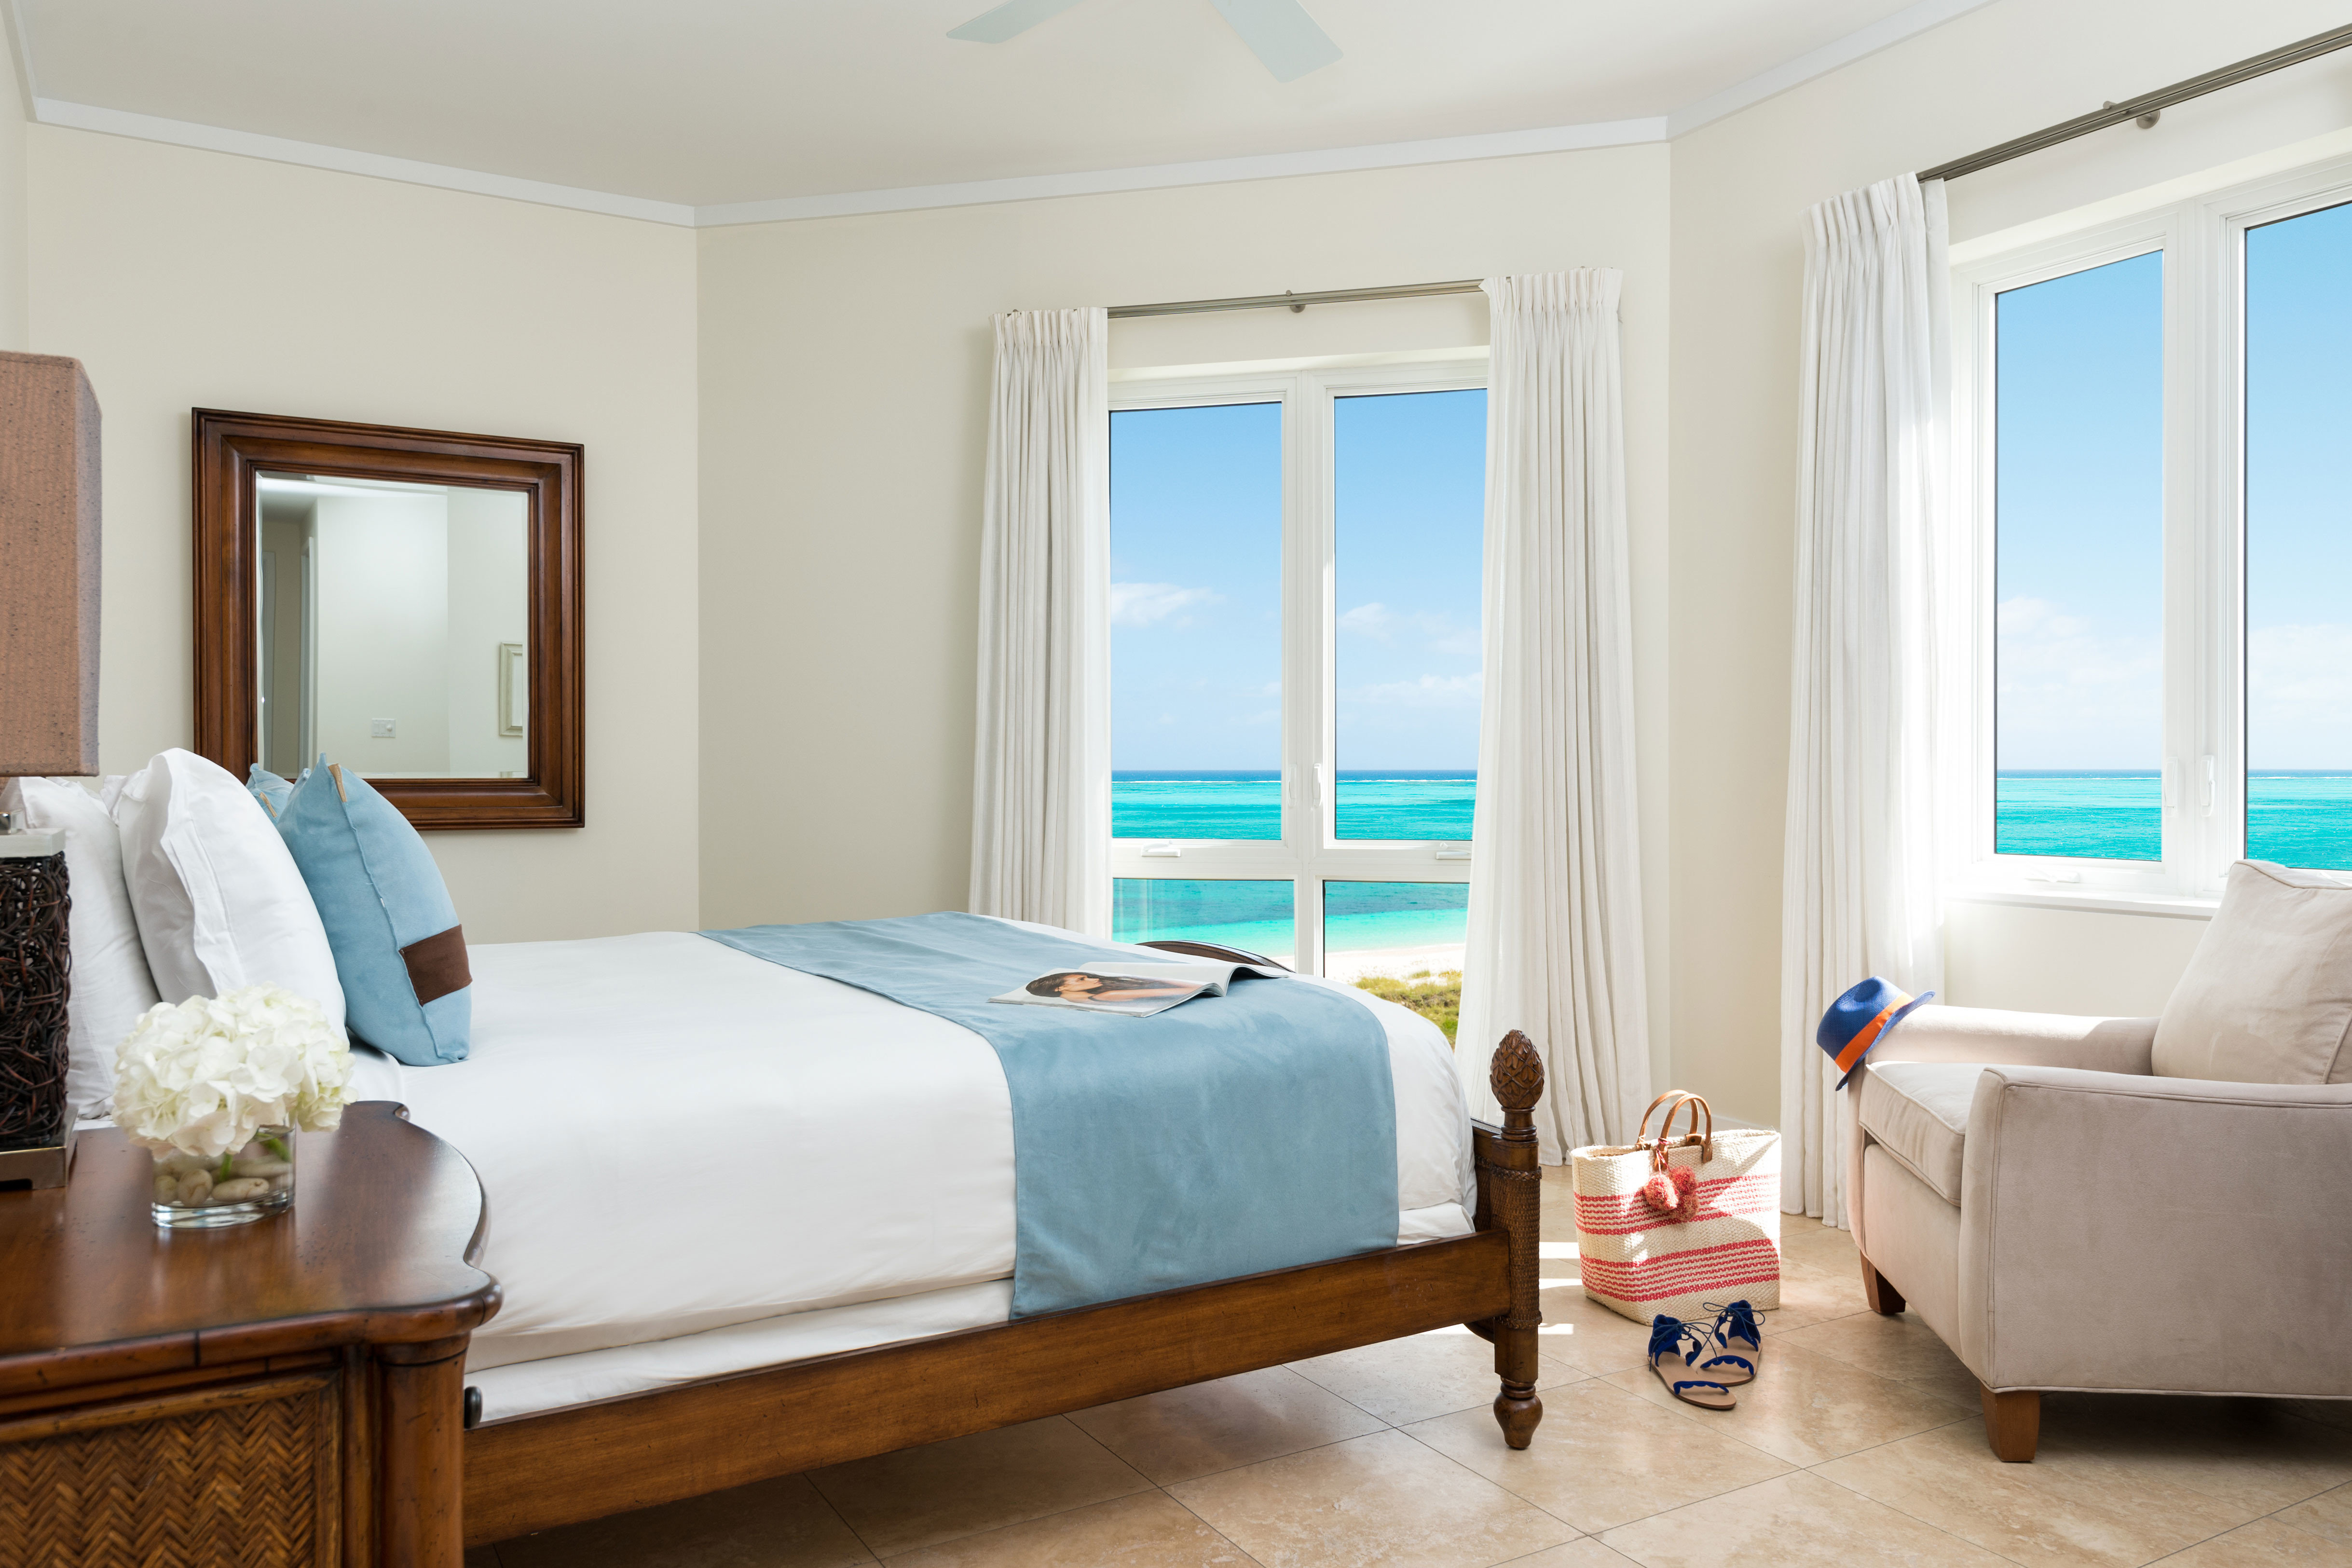 Beachfront Bedroom Family Hotels Living indoor floor wall window sofa room property furniture ceiling Suite hotel estate real estate interior design home cottage living room apartment bed decorated flat Modern